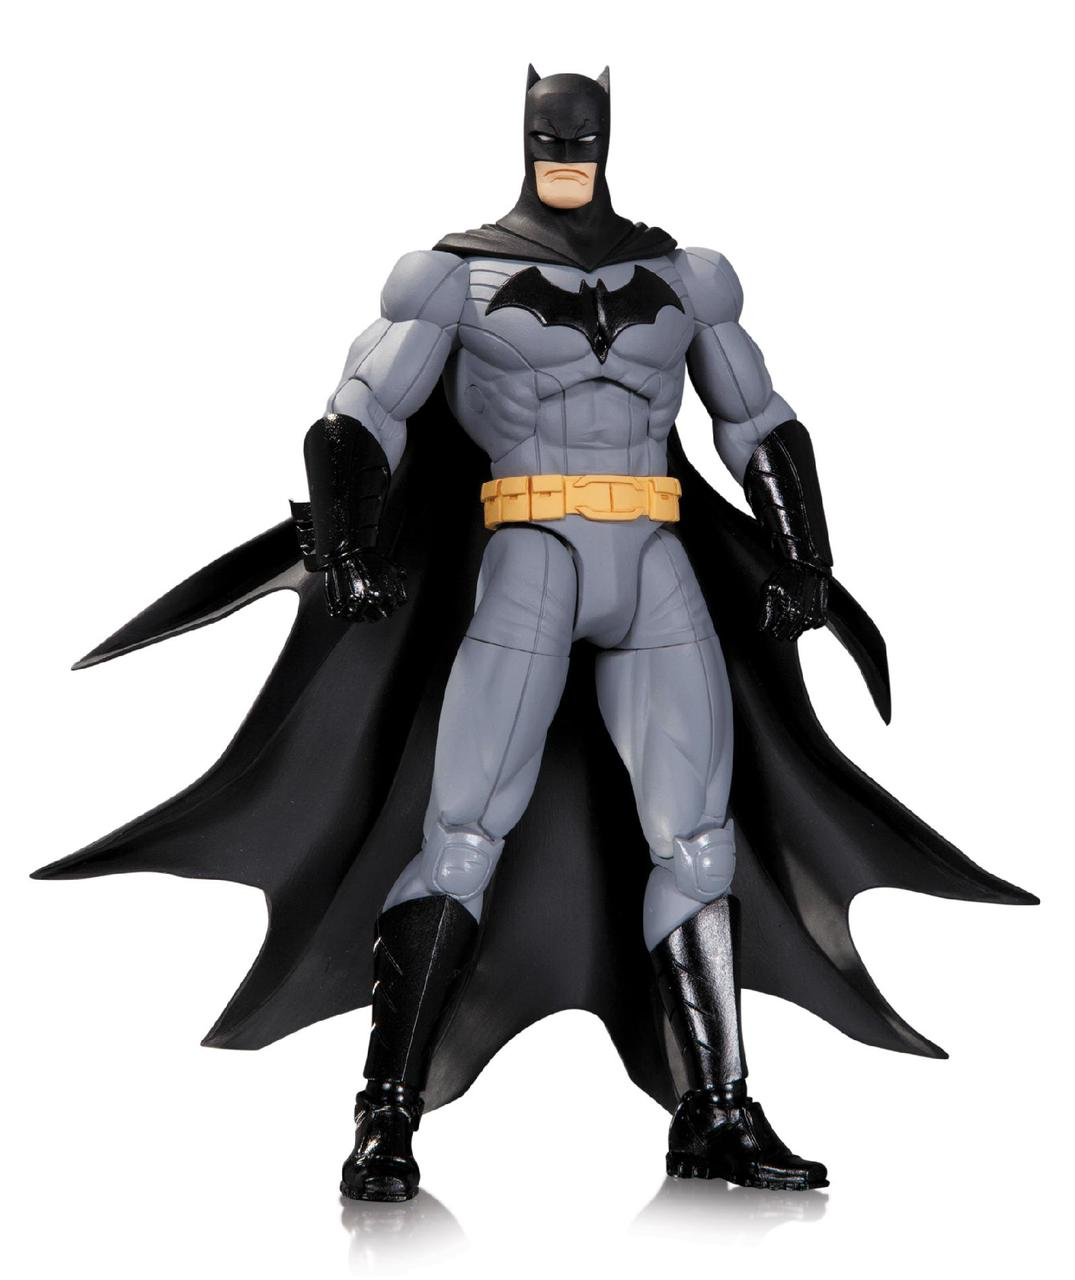 DC Collectibles Фигурка Бэтмена (Batman). Greg Capullo